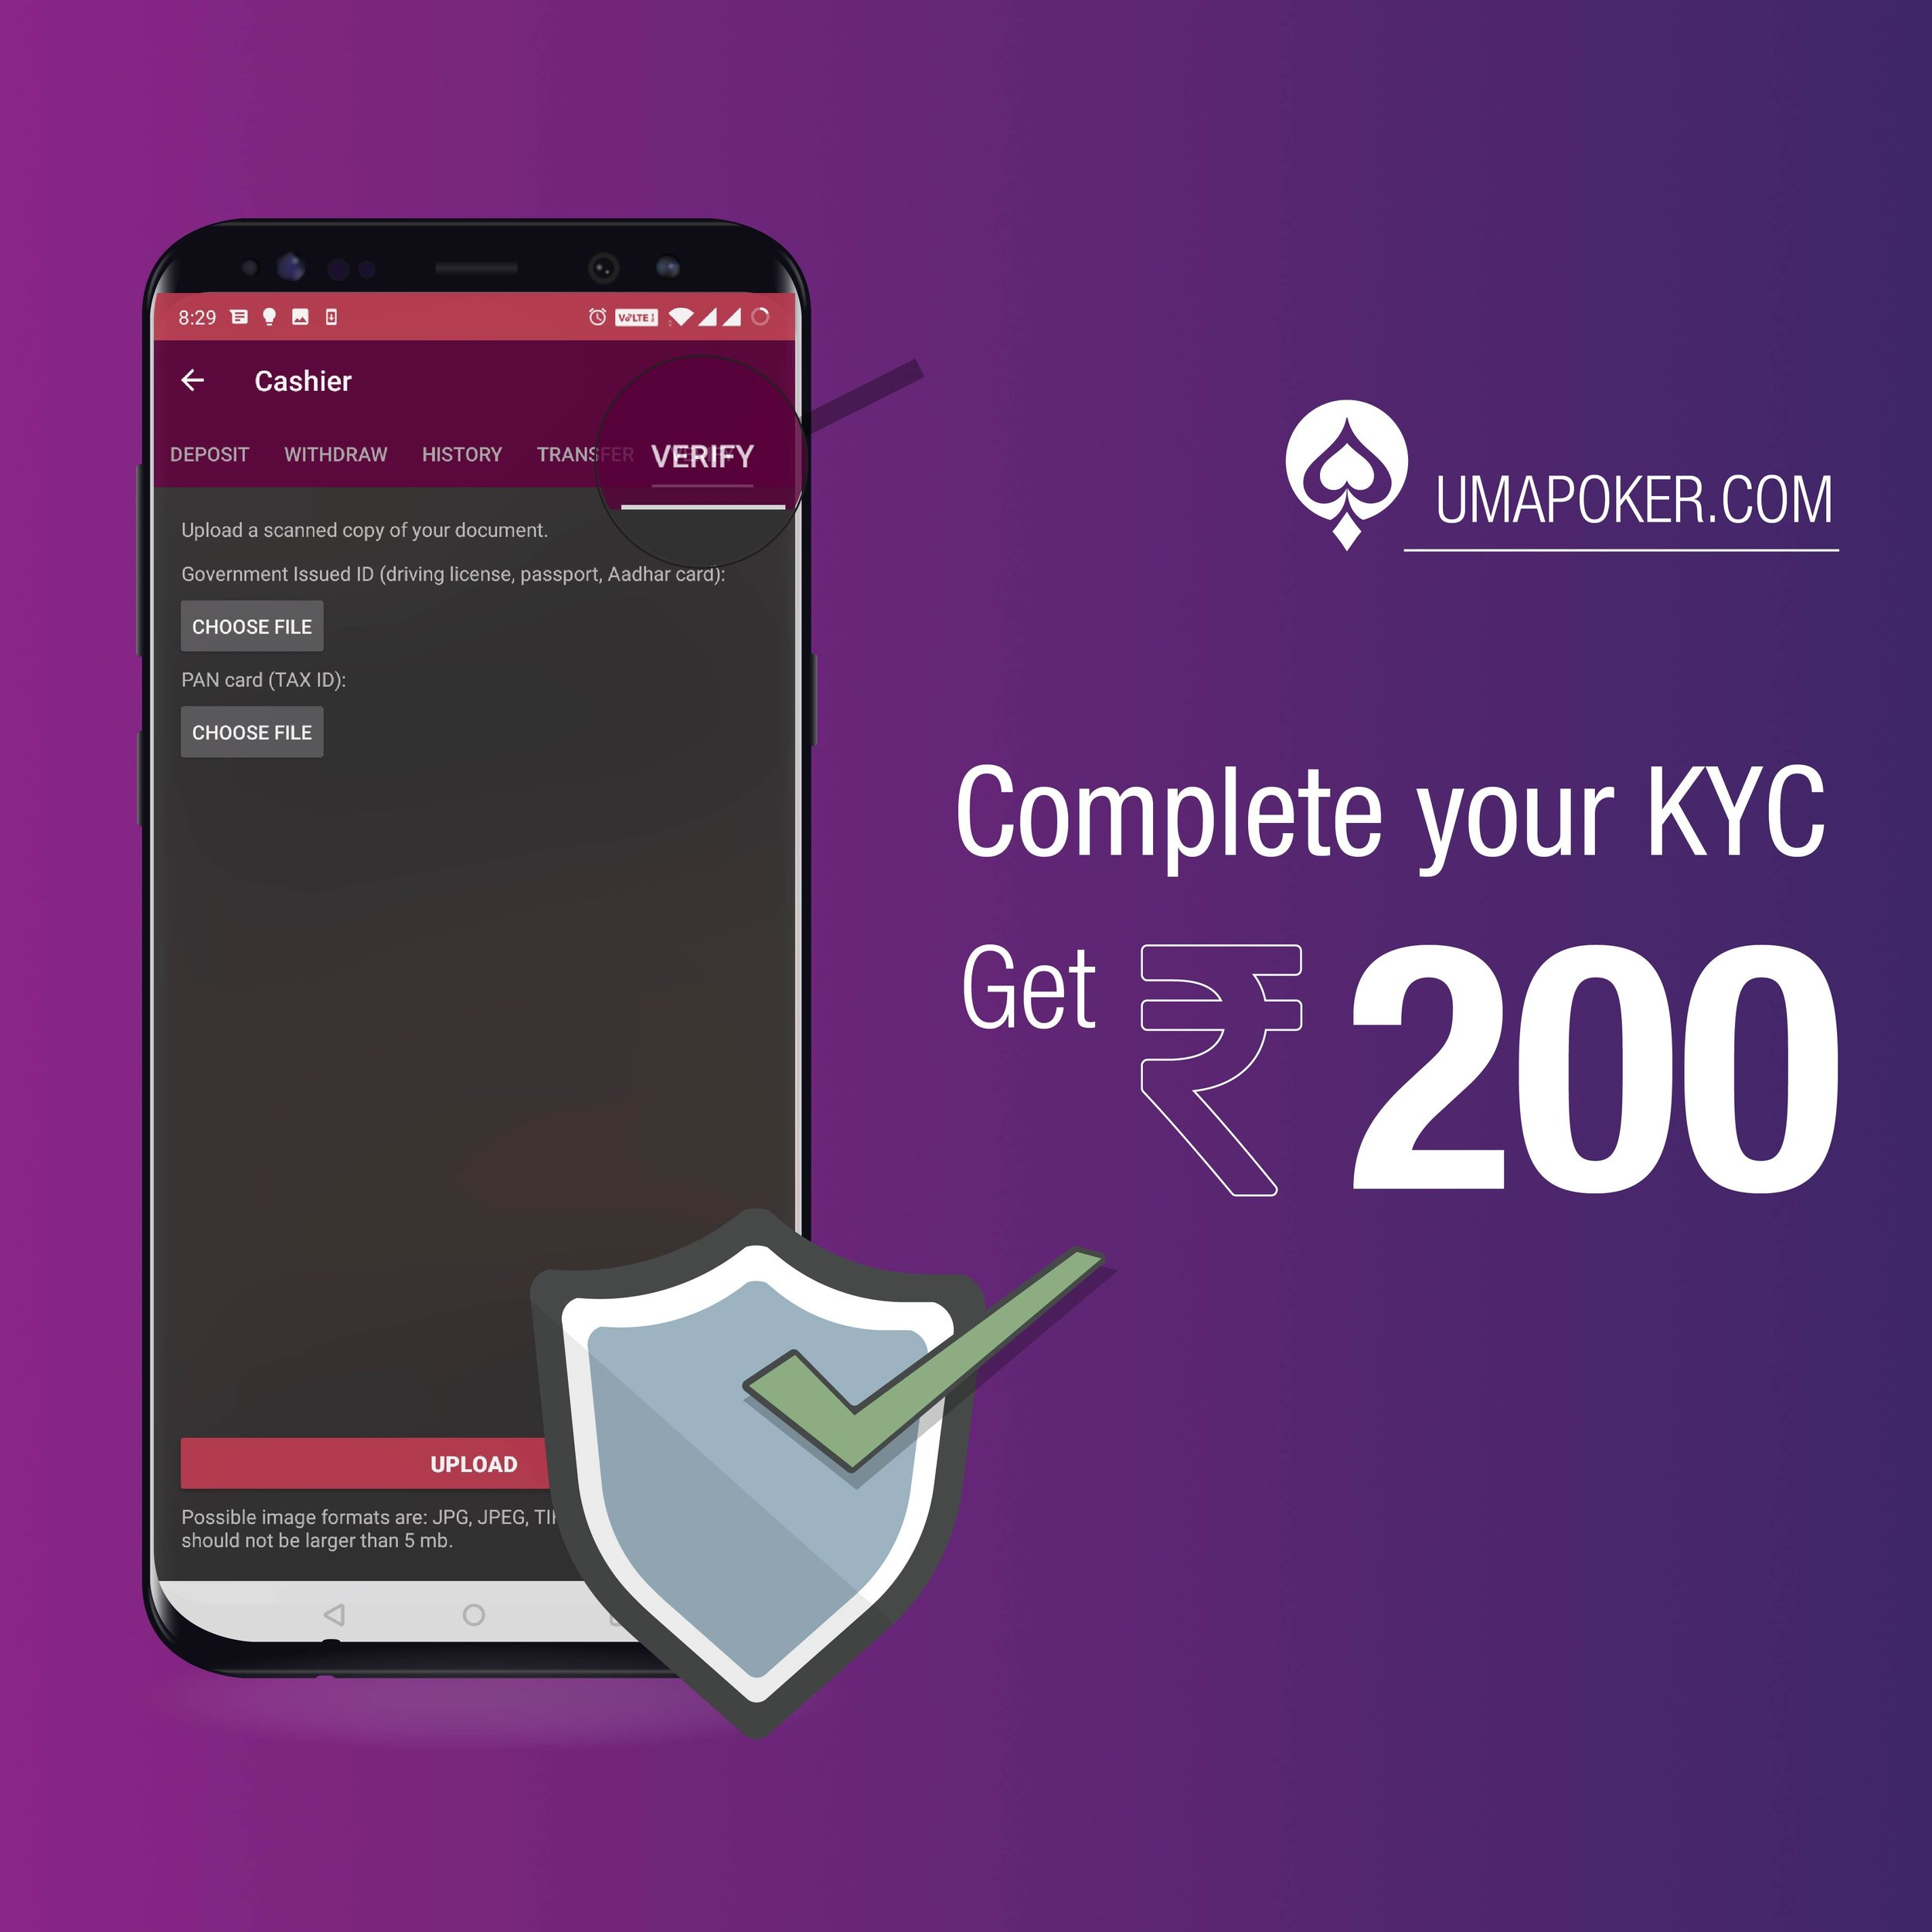 Rs200 Poker Bonus, Finish KYC.